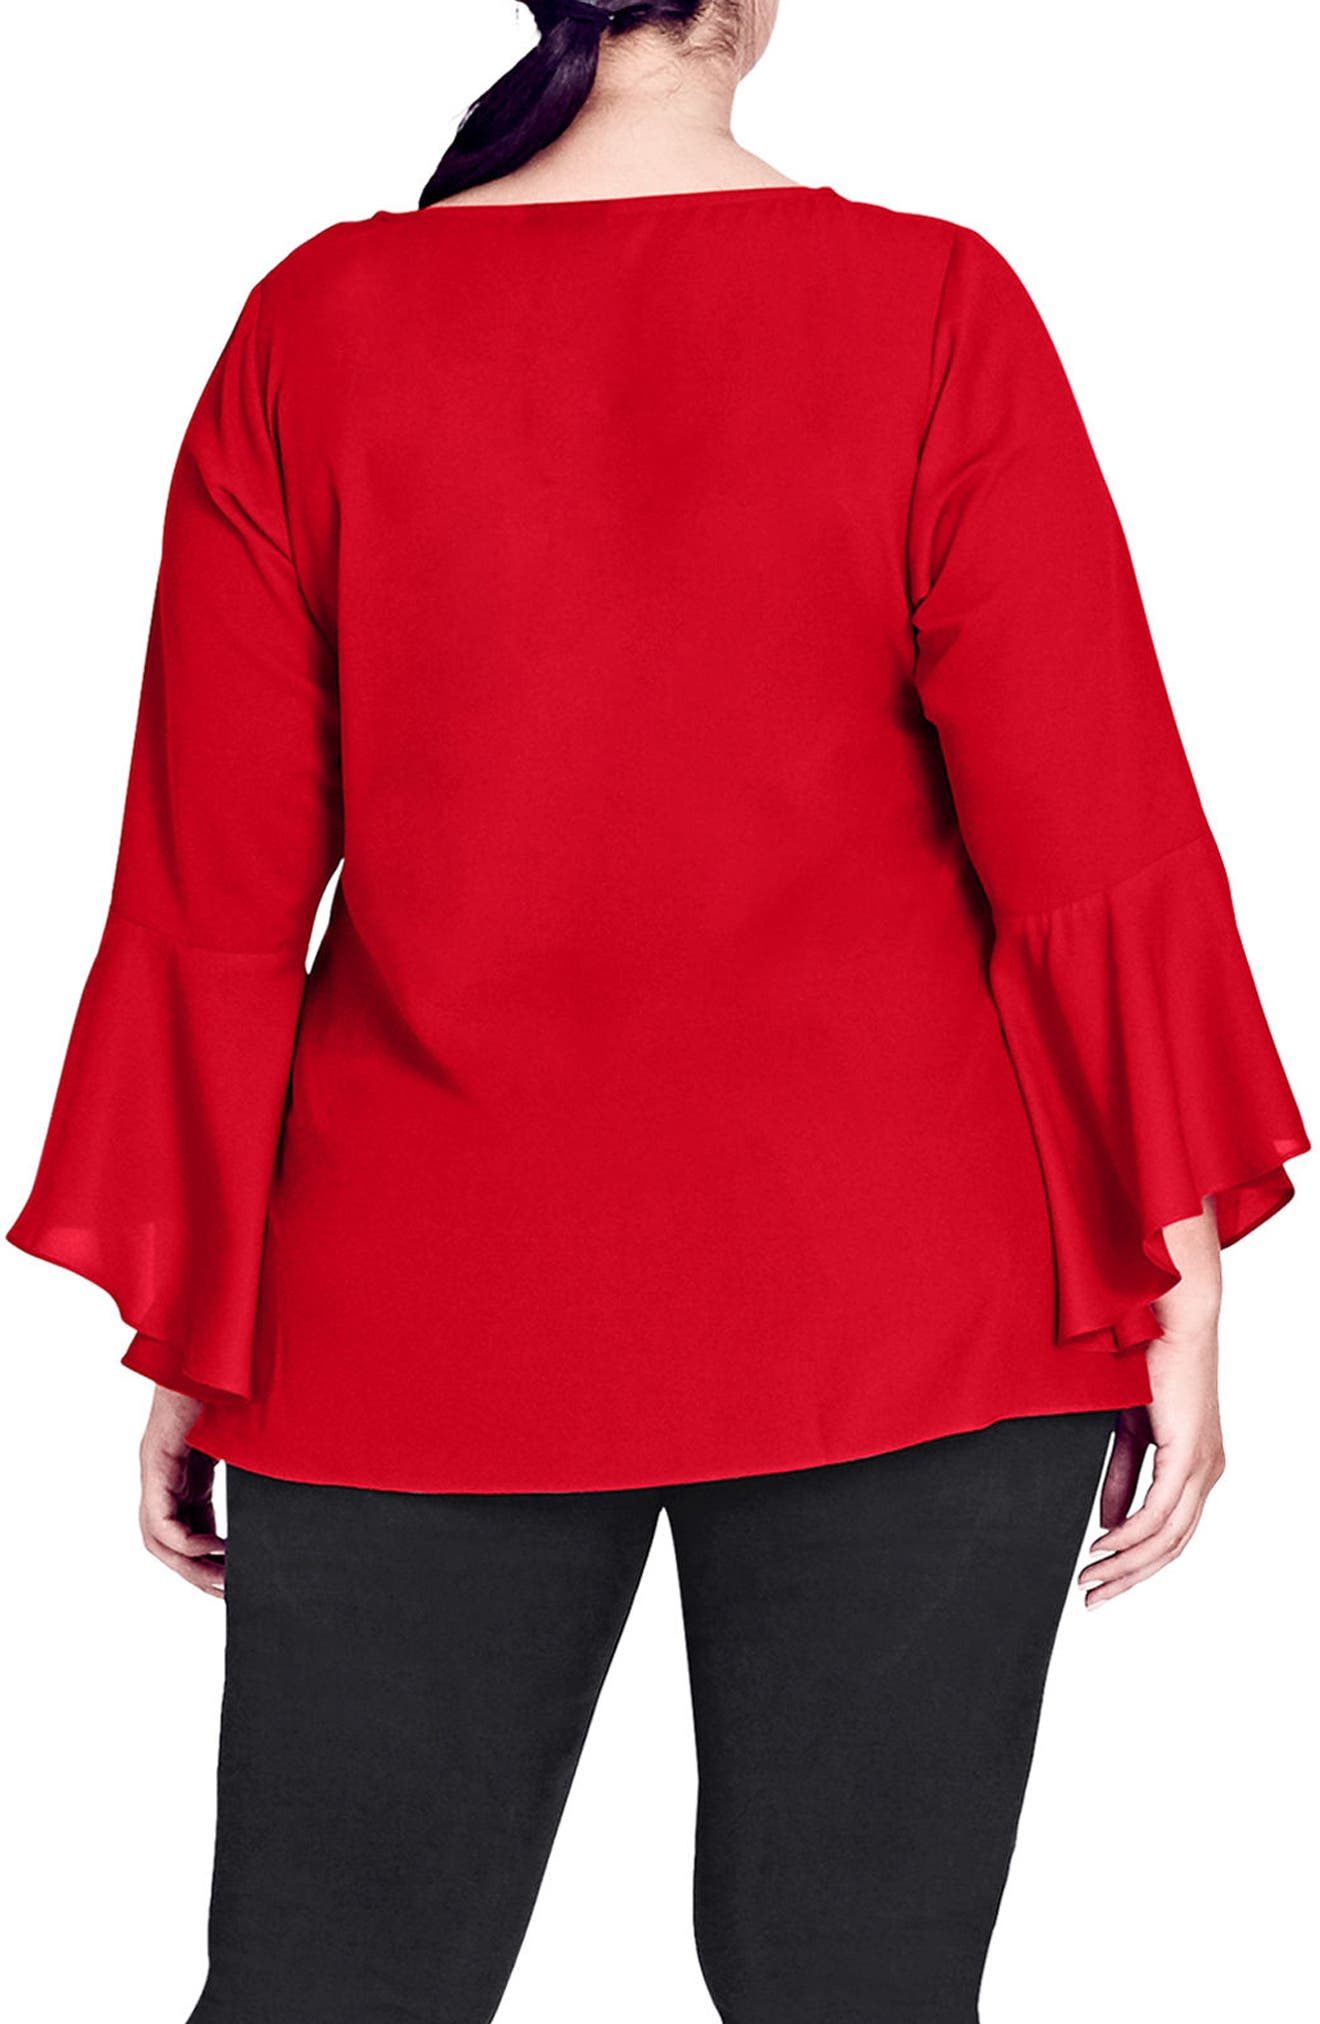 Alternate Image 2  - City Chic Bell Cuff Zip Top (Plus Size)